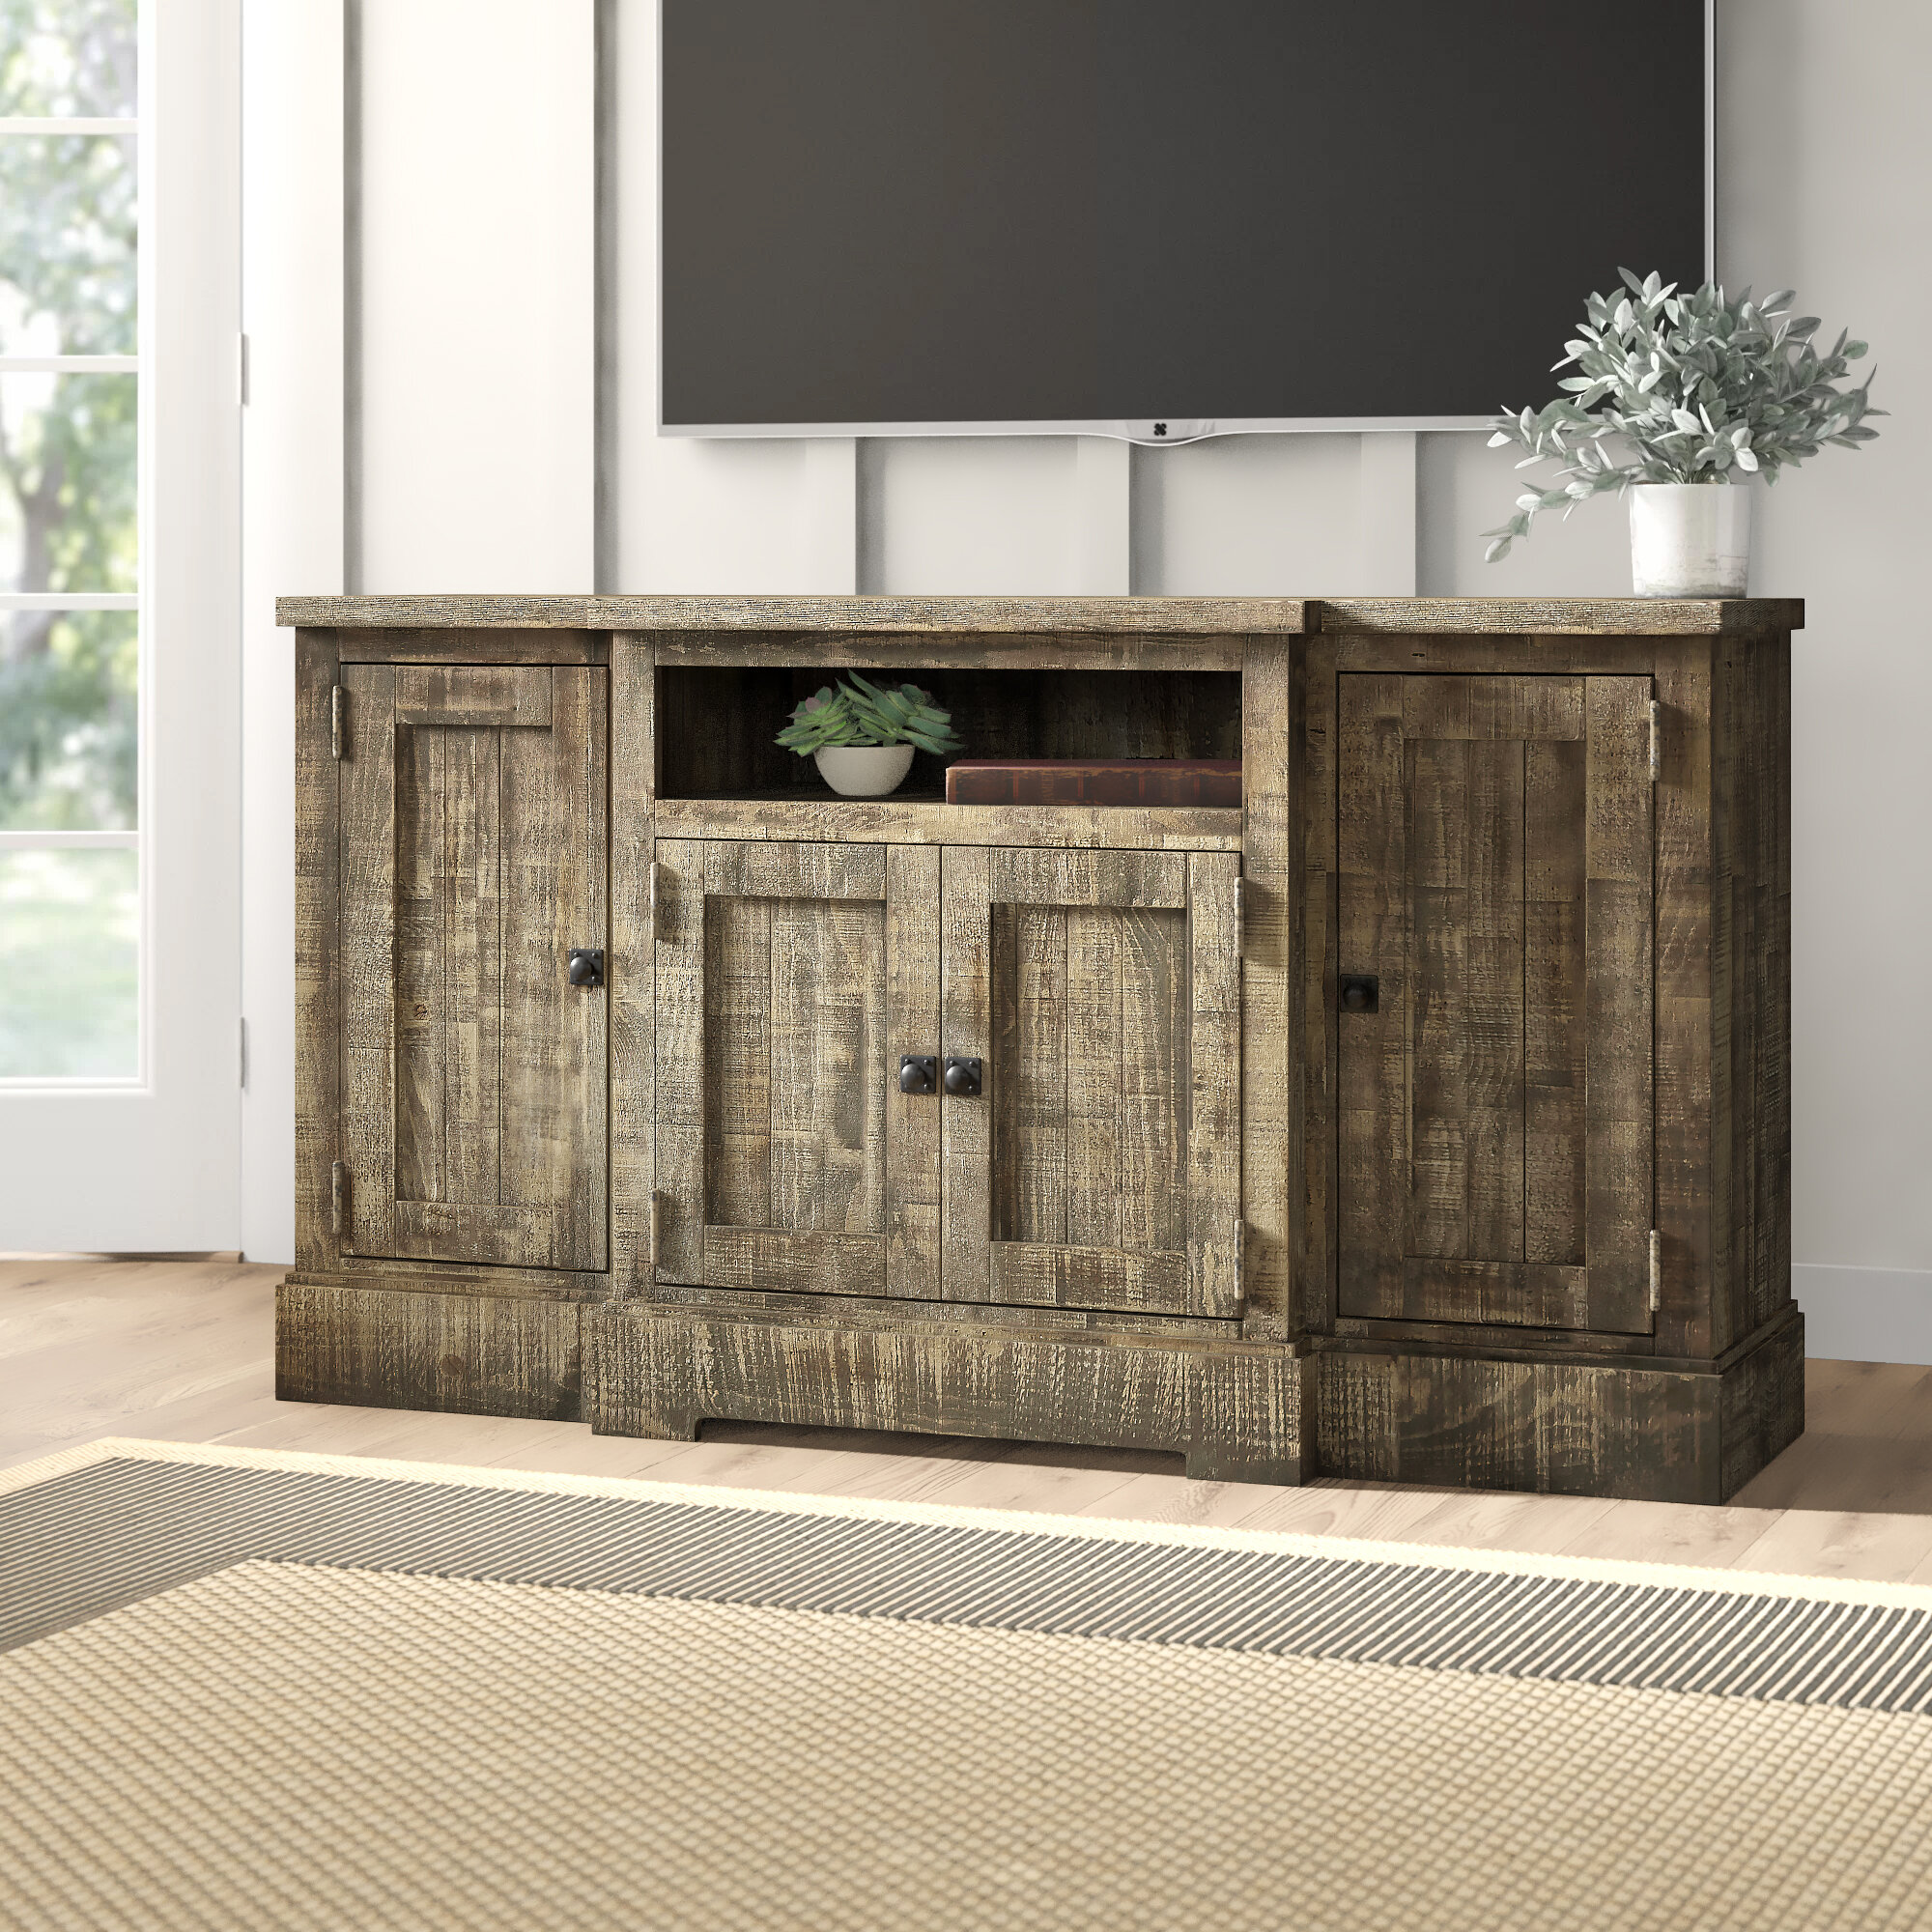 Birch Lane Locklear Solid Wood Tv Stand For Tvs Up To 65 Reviews Wayfair